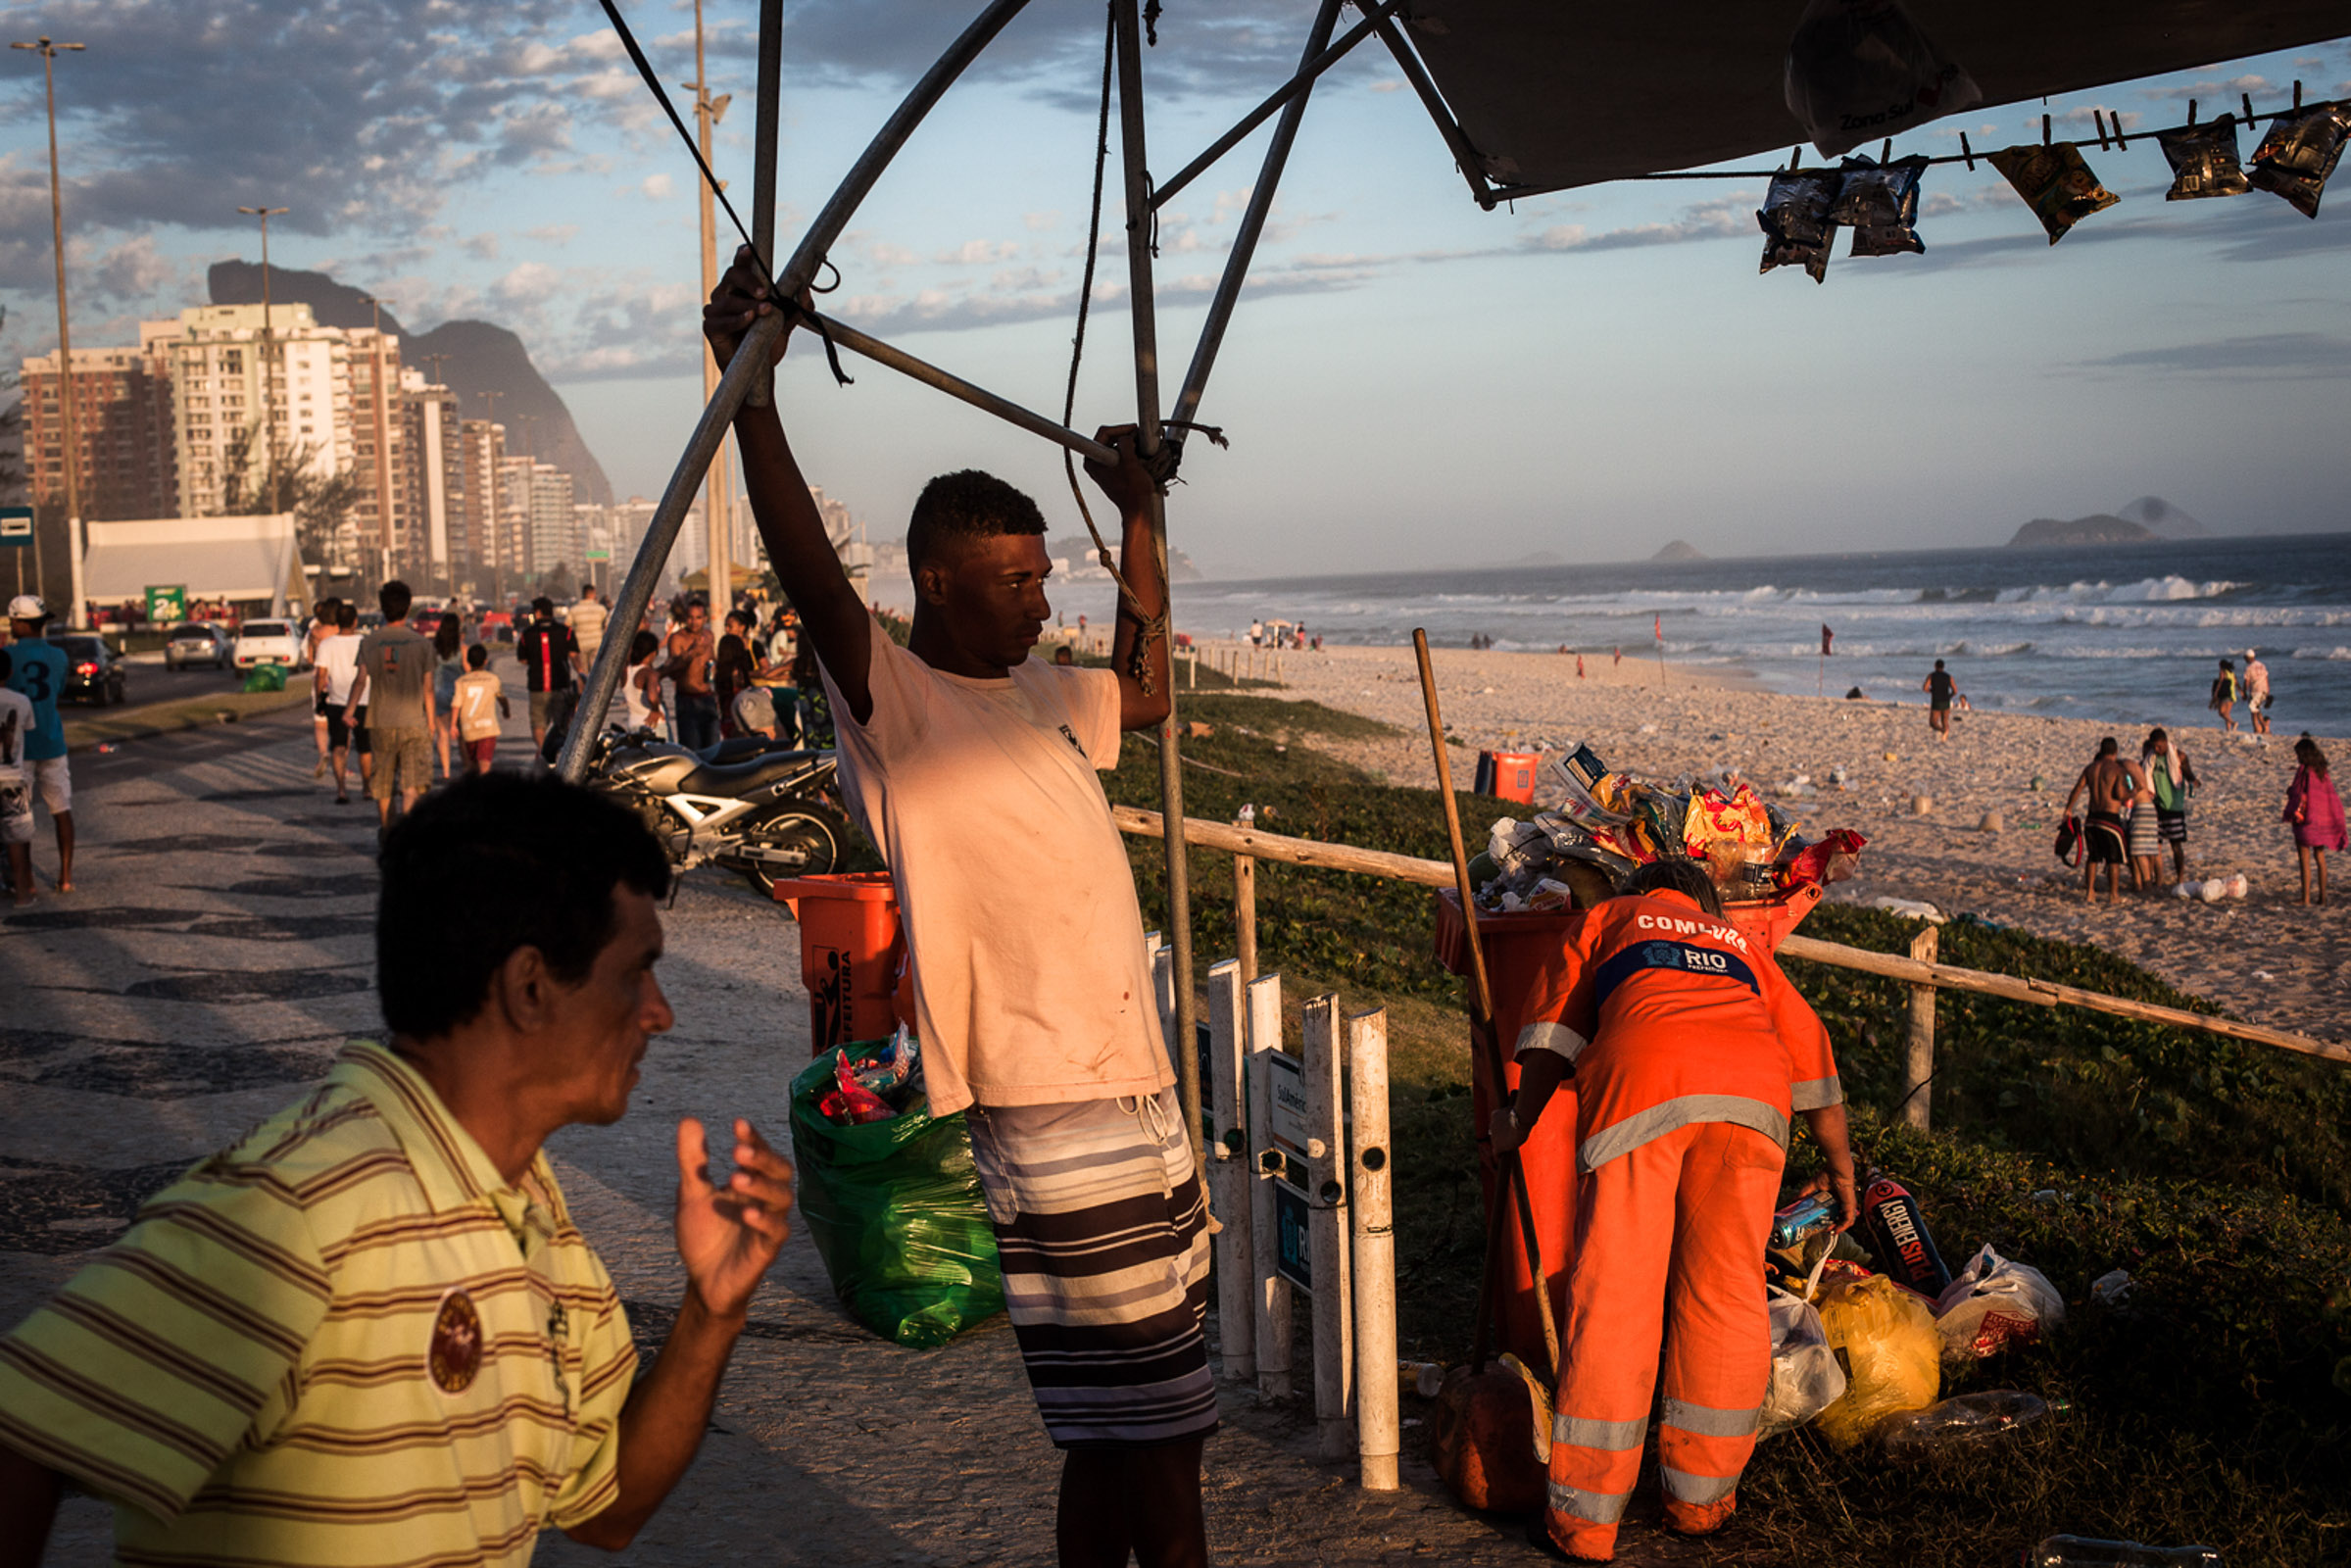 Rio de Janeiro, le 15 Novembre 2013. Fin de journée sur la plage de Barra da Tijuca. Une femme gari commence le nettoyage de la plage.  Rio de Janeiro, November 15, 2013. End of the day on the beach in Barra da Tijuca. A Gari  woman starts cleaning the beach.